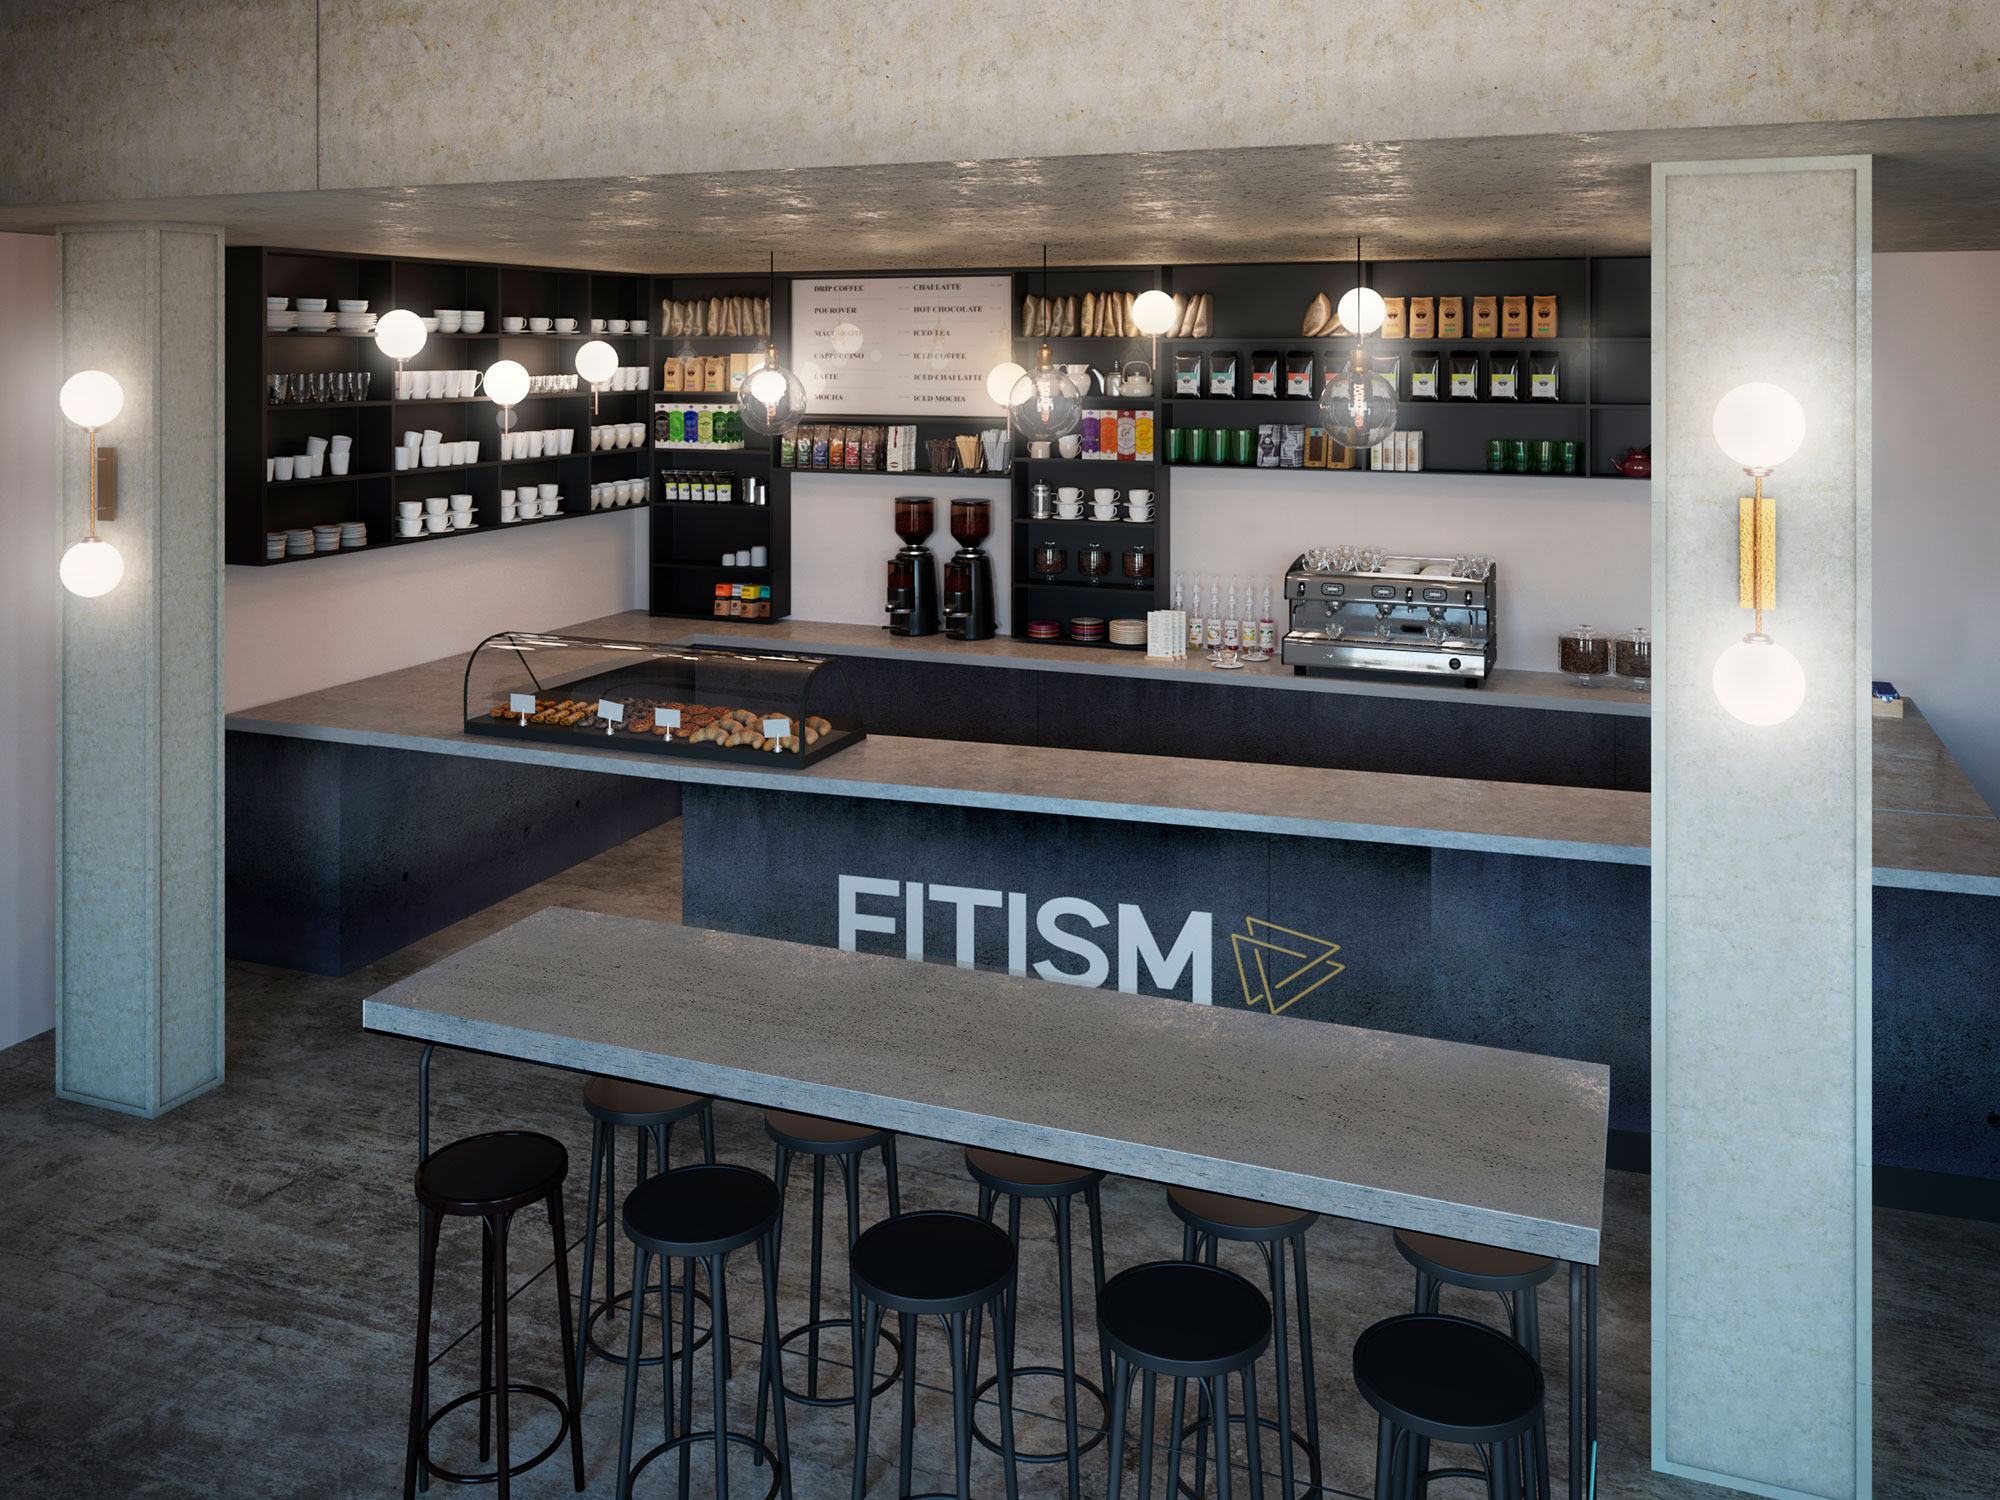 Fitism - Interior Transformation - Project Visual 2 - Grey Coffee